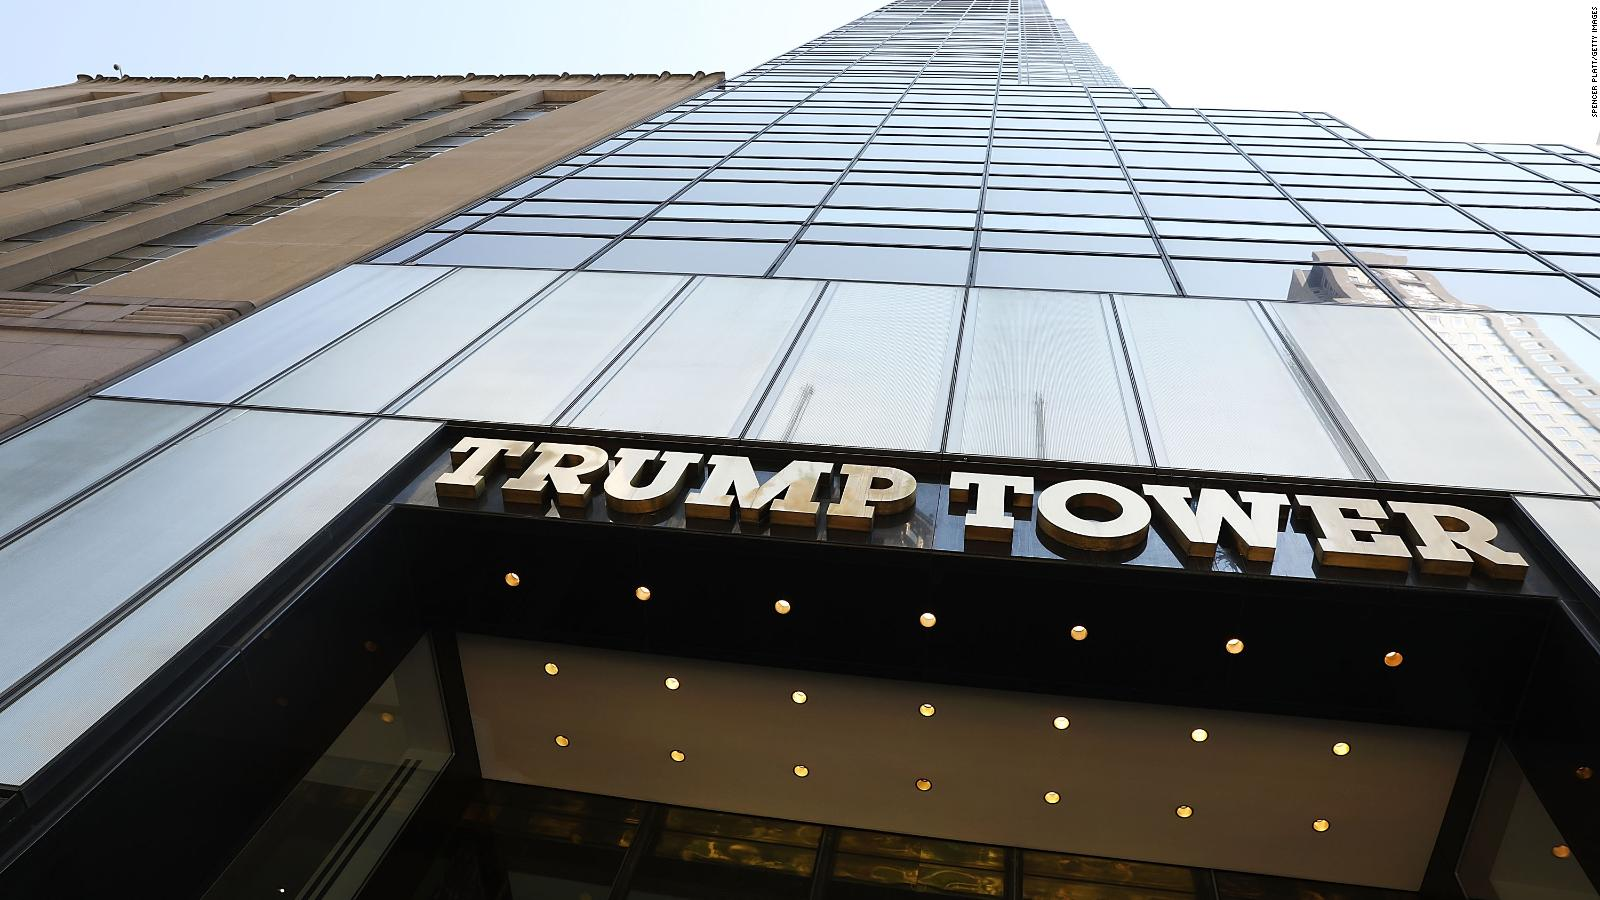 Trump Tower New York Police Are Investigating Over 350 000 In Jewelry Thefts Cnn,Leonardo Dicaprio Movies List Imdb